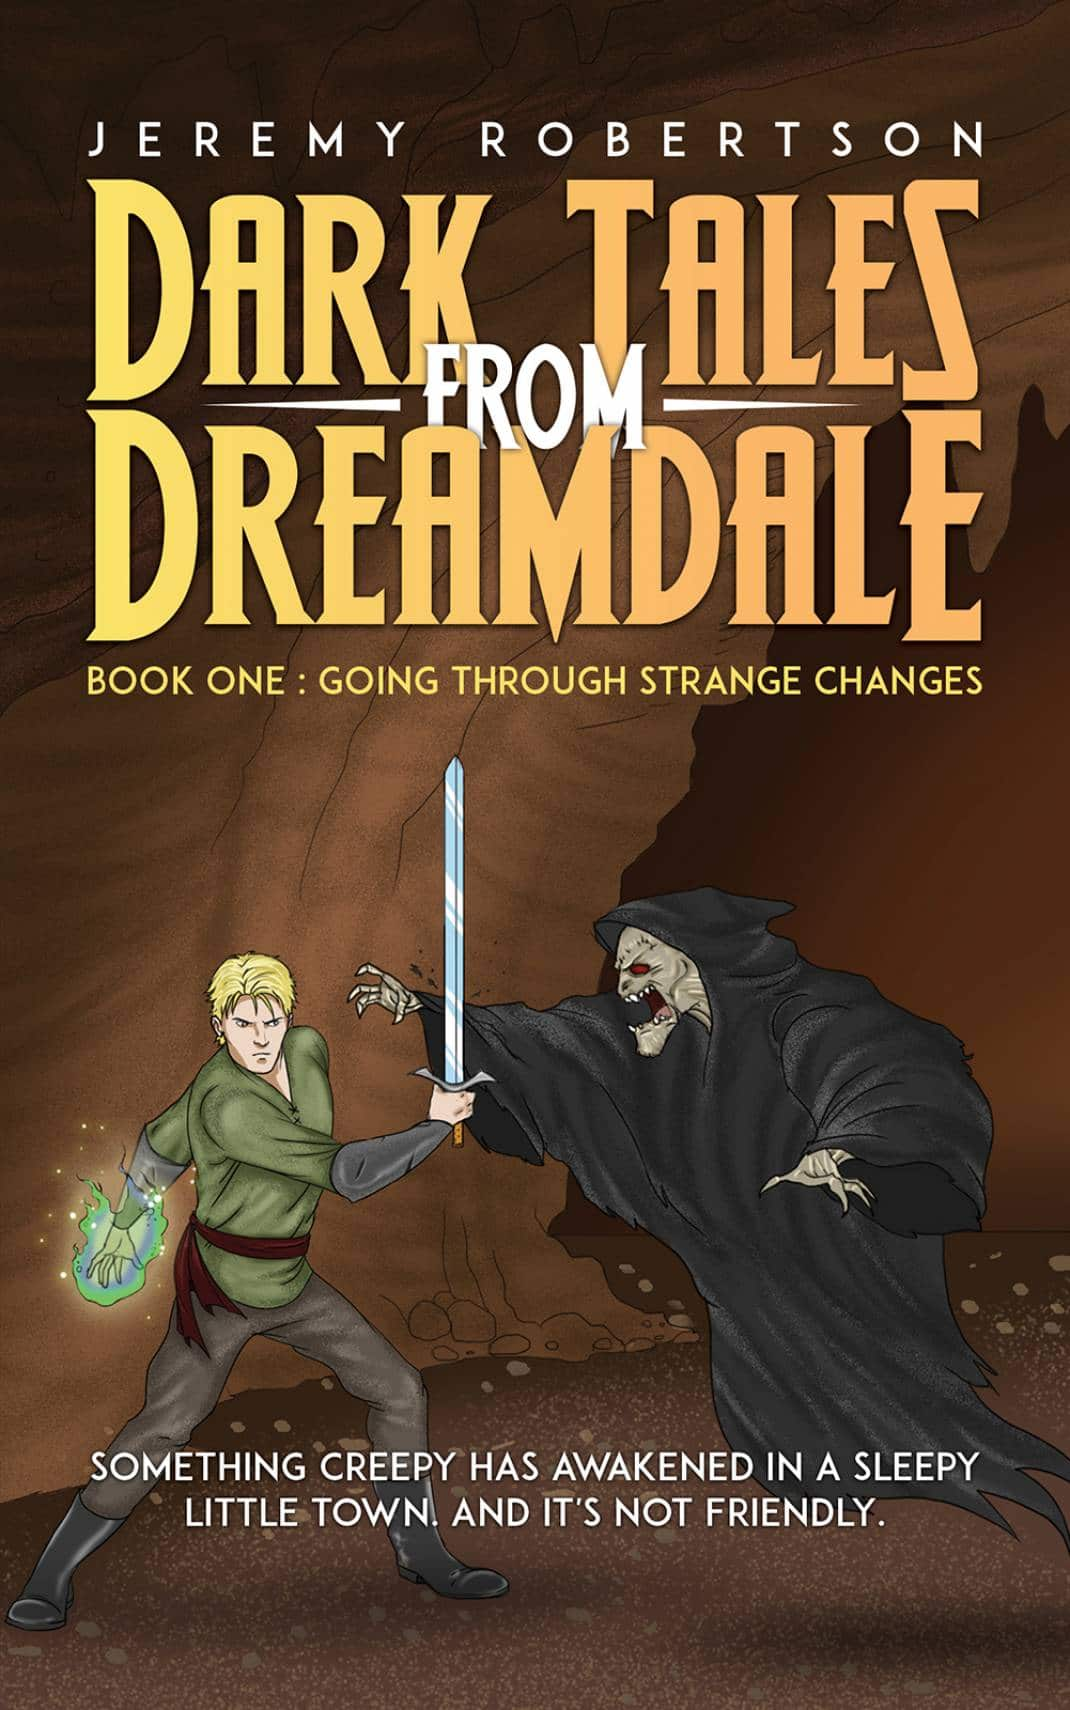 Dark Tales from Dreamdale. When a scary nightmare creature escapes its underworld prison, a brave boy, Arden Wonder, must slay the quirky dream monster Count Comatose before the villain has an opportunity to feed on the dreams and nightmares of young souls that will allow Count Comatose to unleash a nightmarish apocalypse that will corrupt reality.